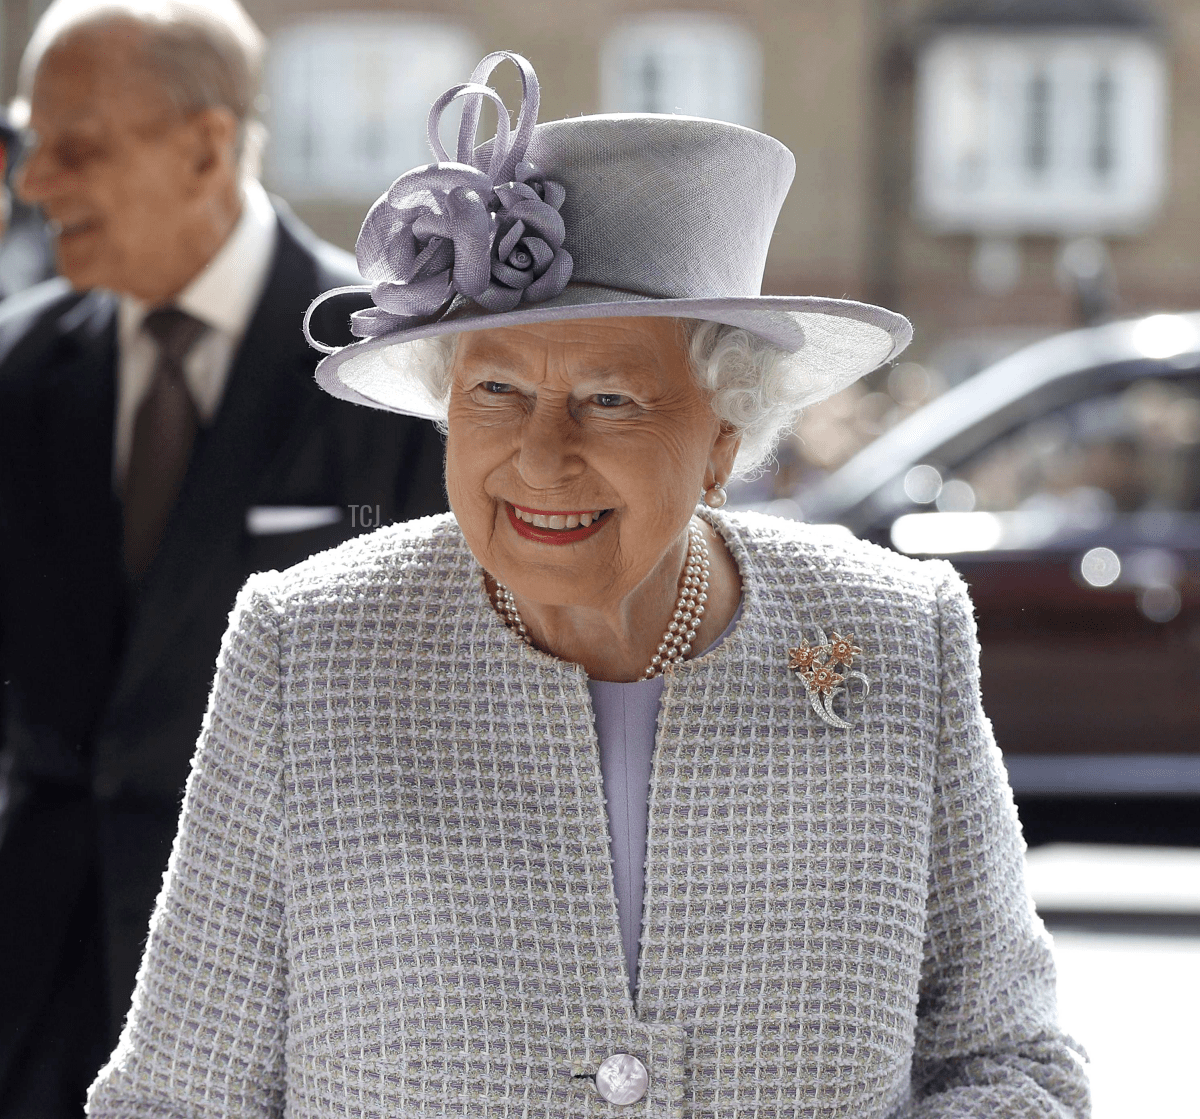 Queen Elizabeth II smiles as she arrives to meet residents during a visit to Priory View, an independent living scheme for older residents, in Dunstable on April 11, 2017